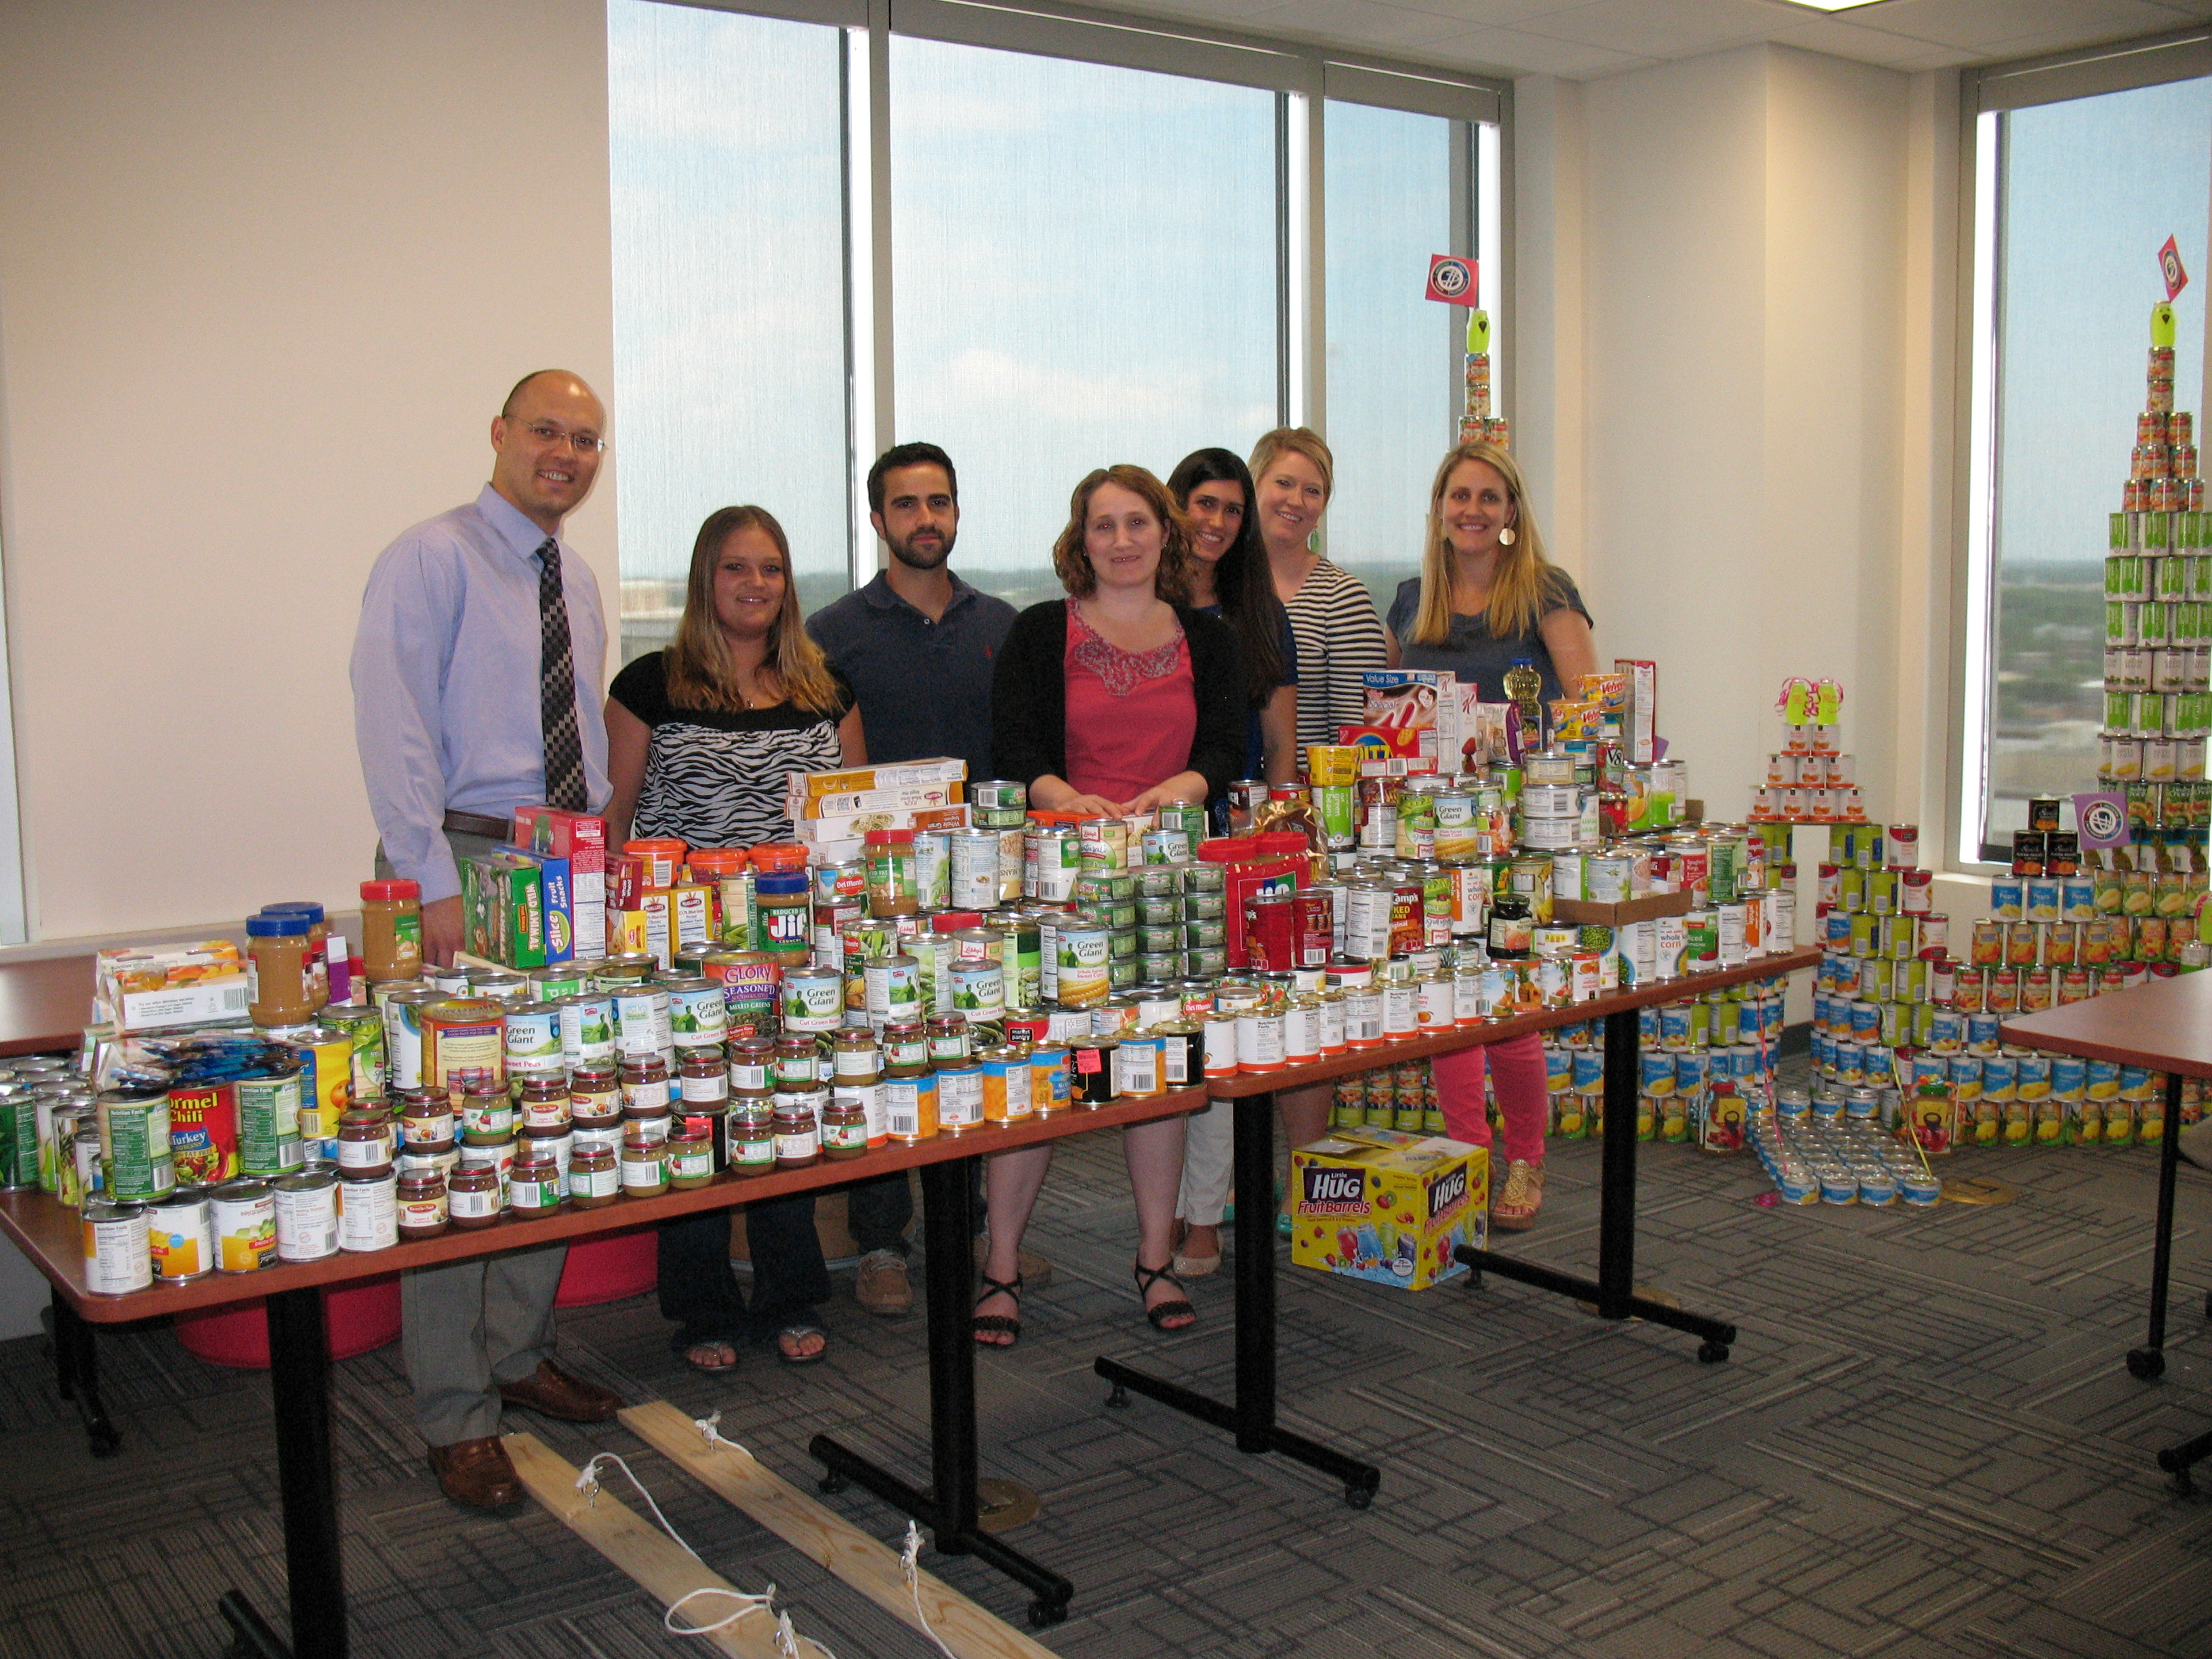 Dixon Hughes Goodman LLP Donates More Than 431,000 Pounds of Food to Food Banks